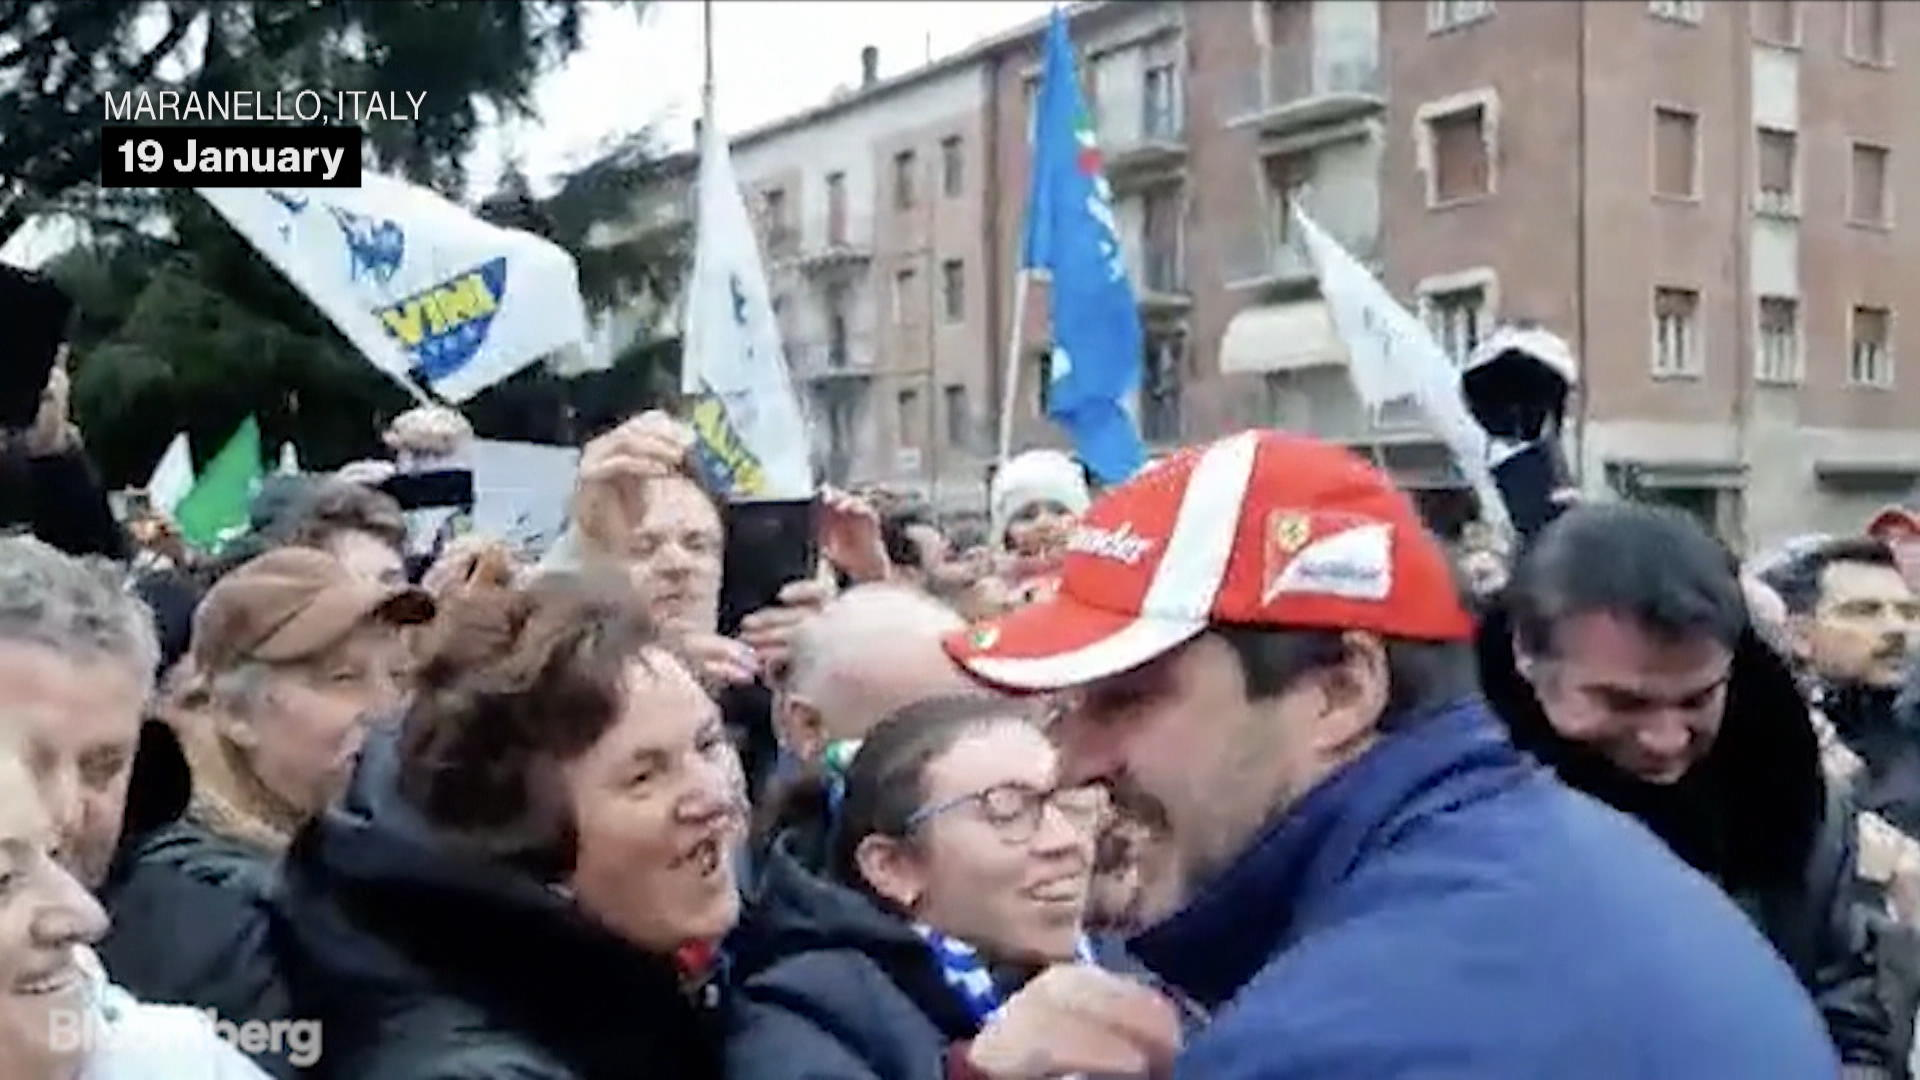 Matteo Salvini, Italy League Party Leader, Greets Supporters Ahead of Emilia-Romagna Regional Vote